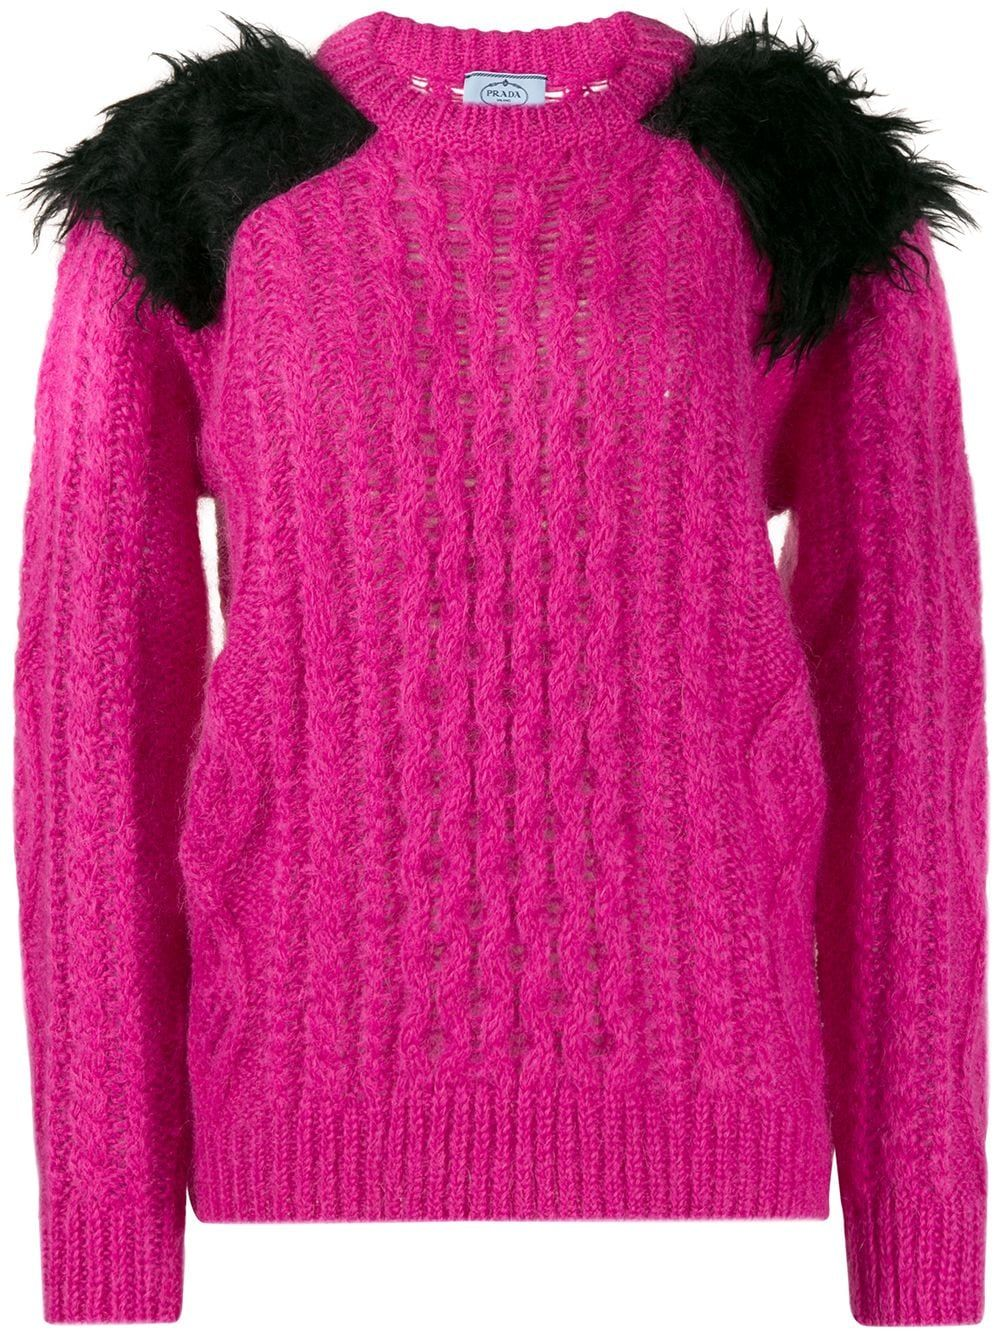 Prada Chunky Knit Jumper - Farfetch